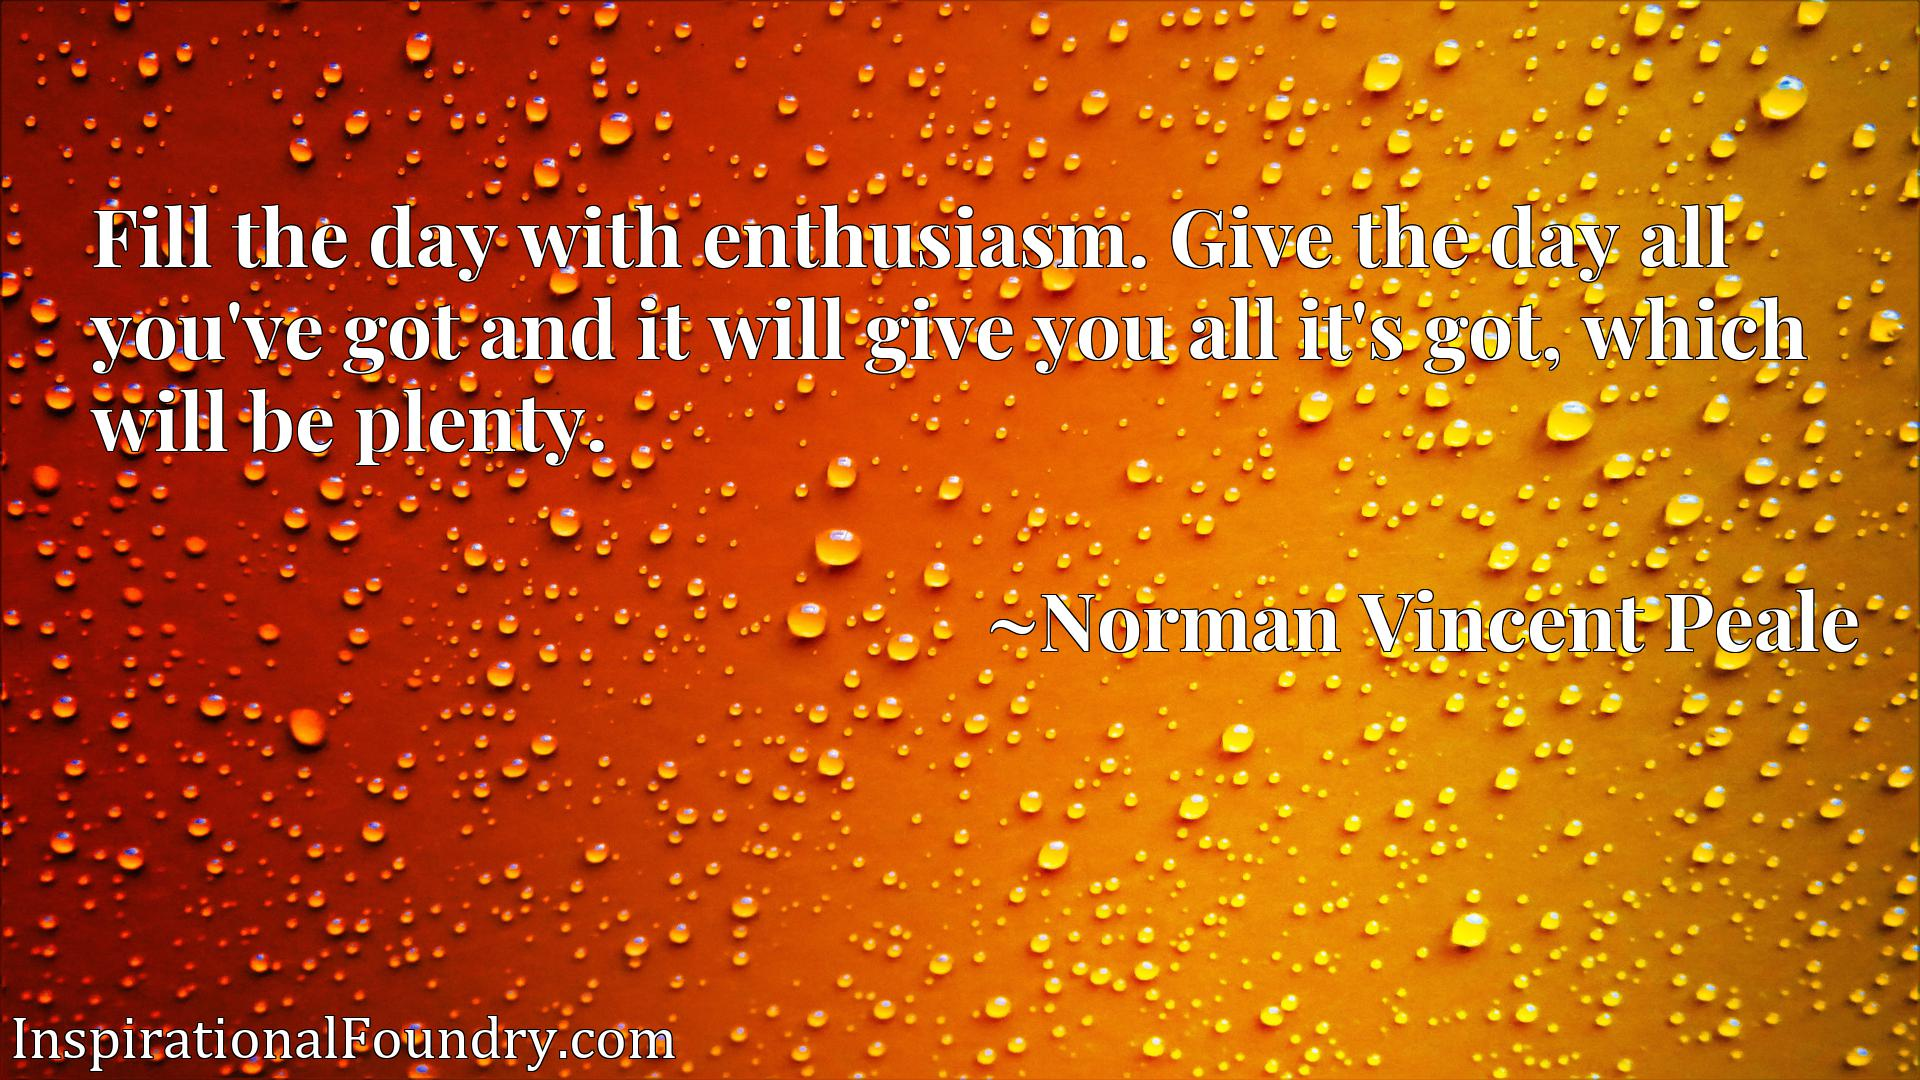 Quote Picture :Fill the day with enthusiasm. Give the day all you've got and it will give you all it's got, which will be plenty.